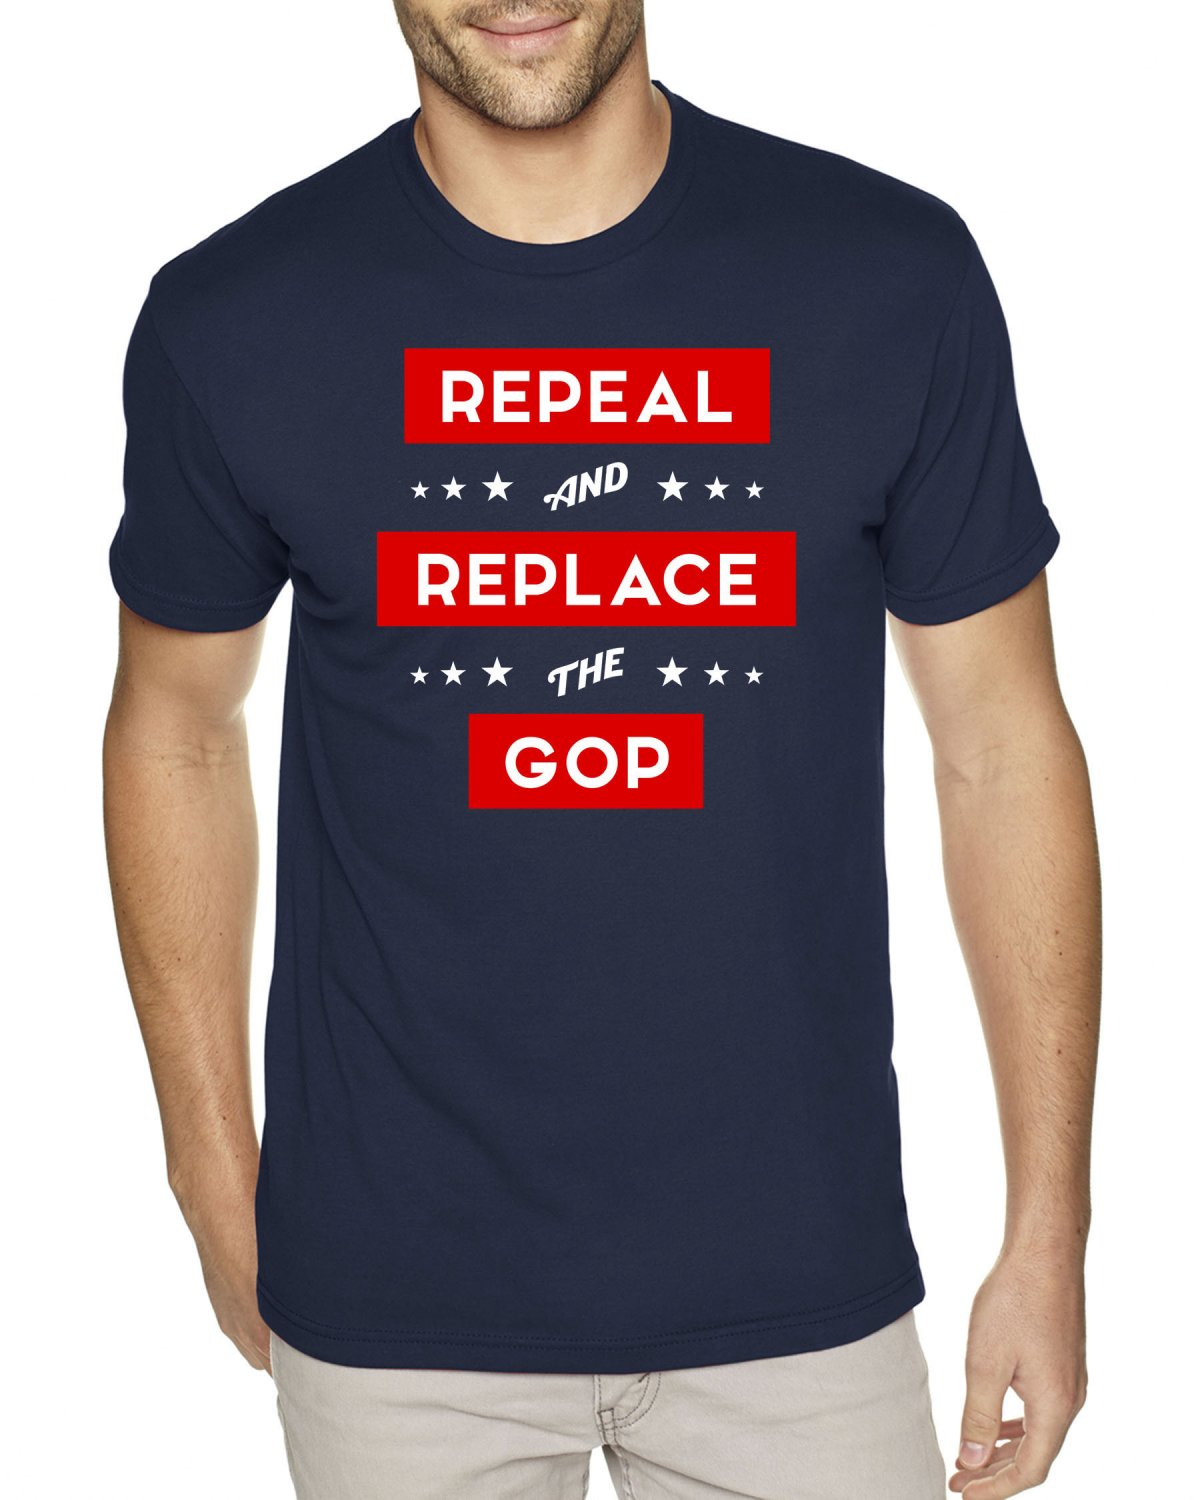 REPEAL AND REPLACE THE GOP - Premium Sueded Shirt SIZE M